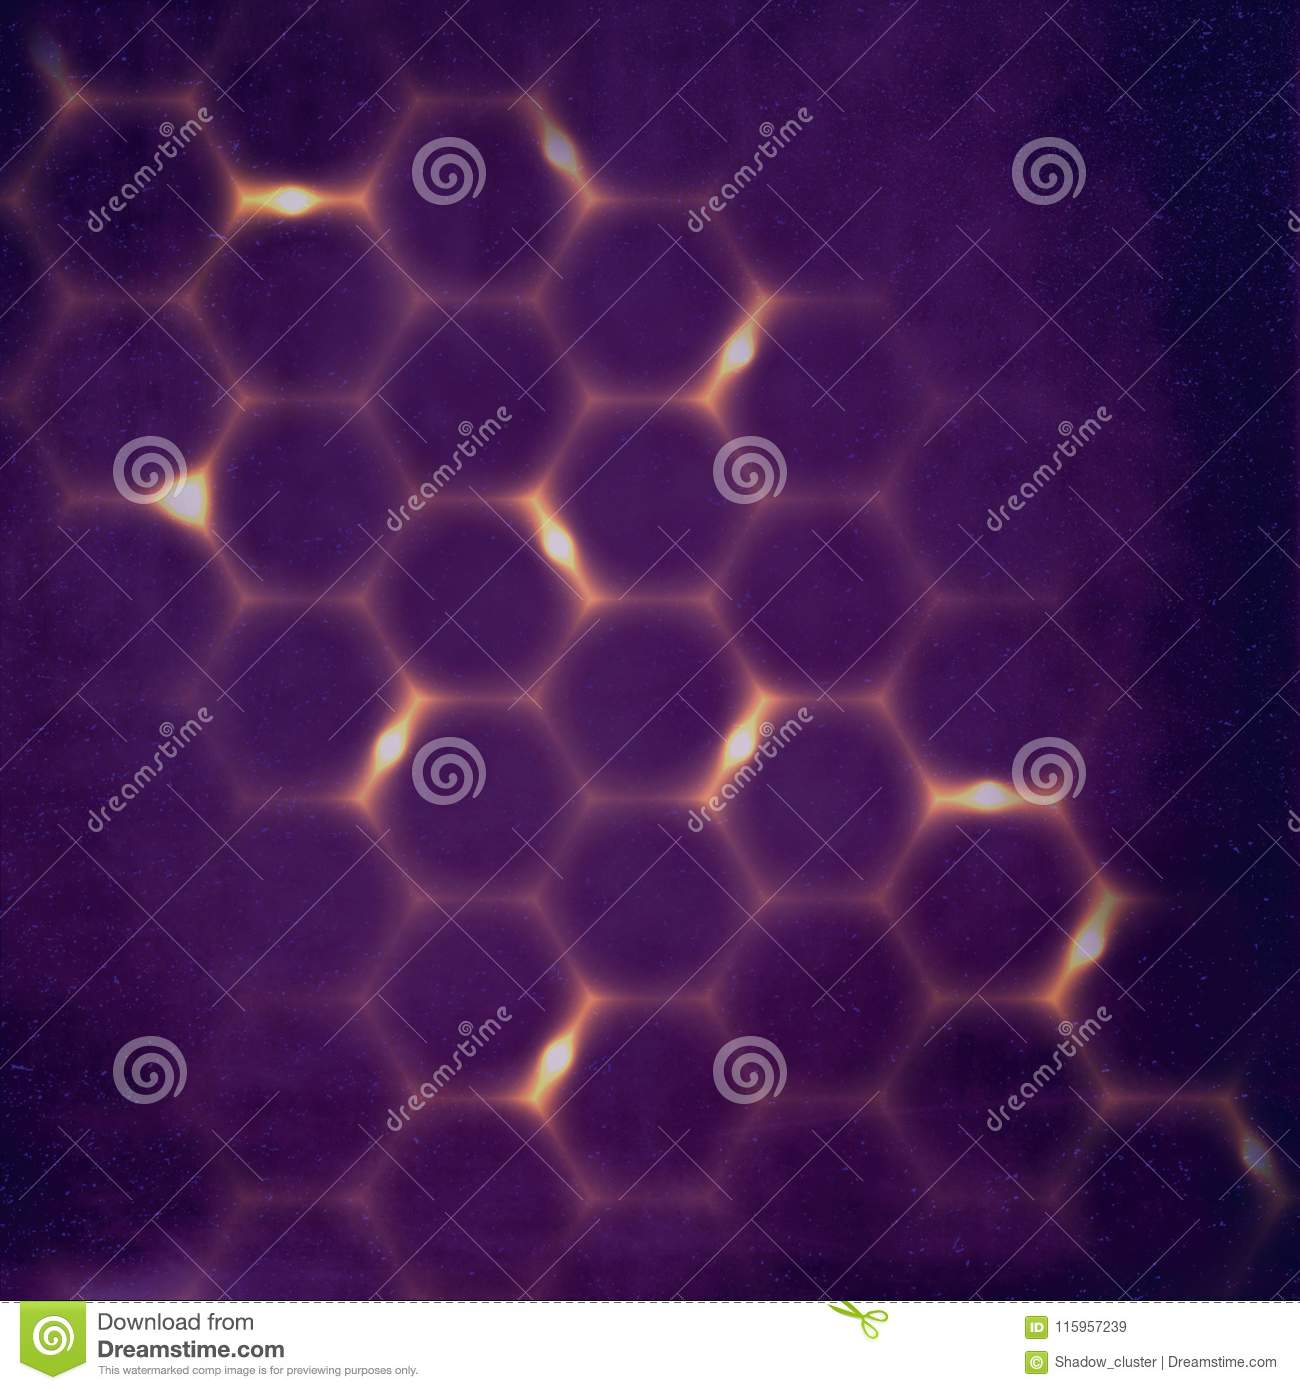 Abstract Scientific Honeycomb Background Stock